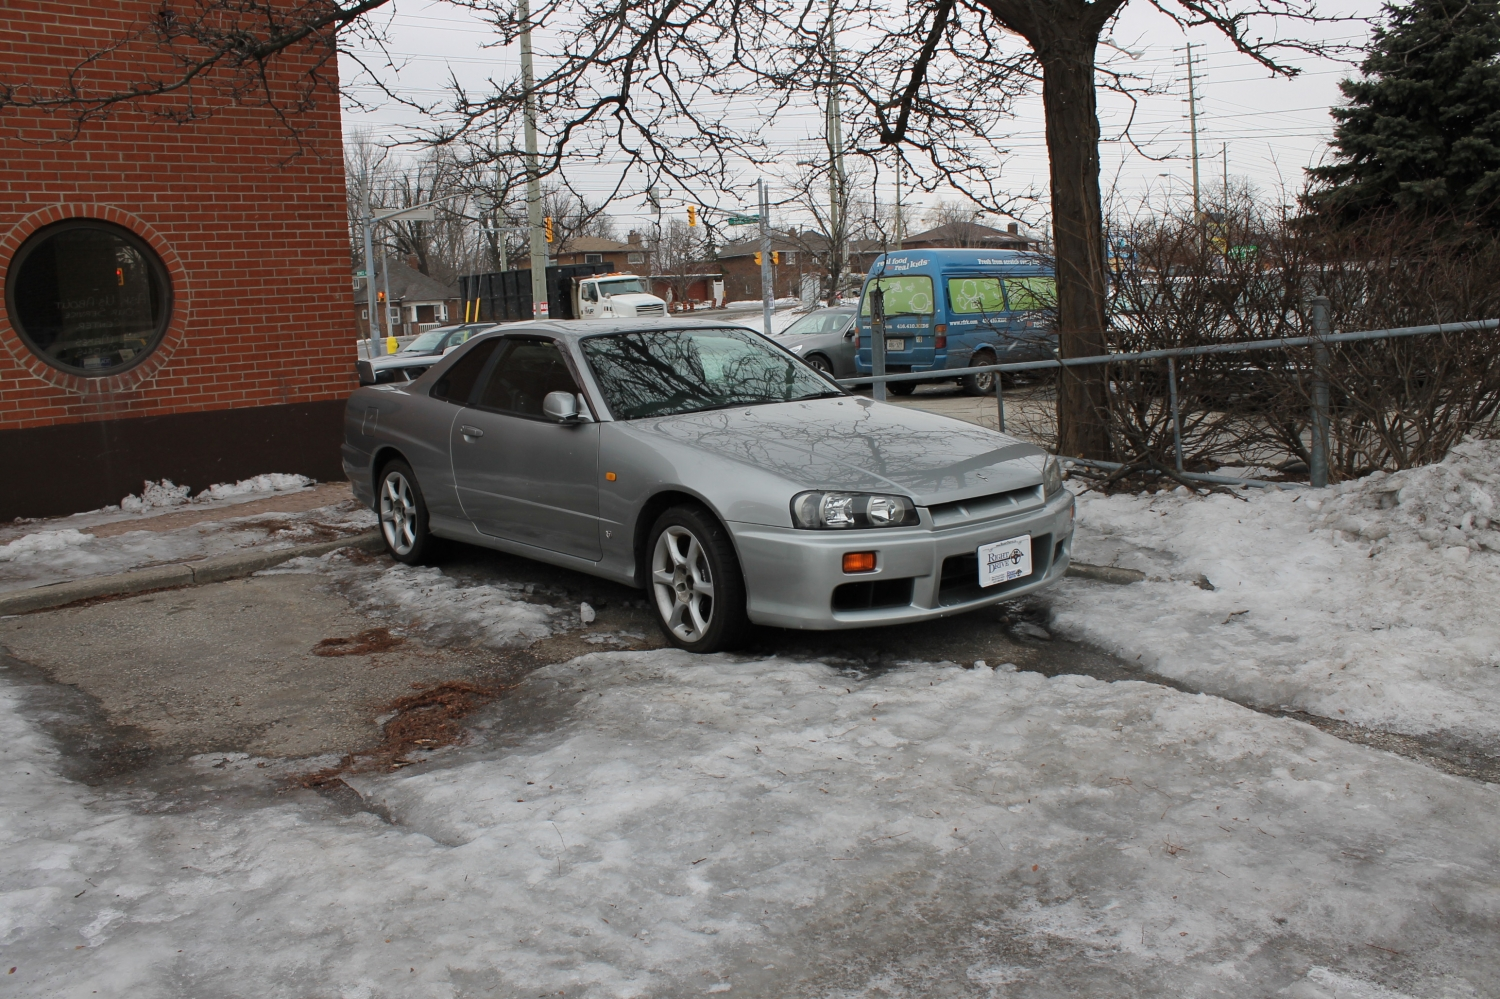 That's right. An R34 Skyline. Just sitting outside. In the snow.